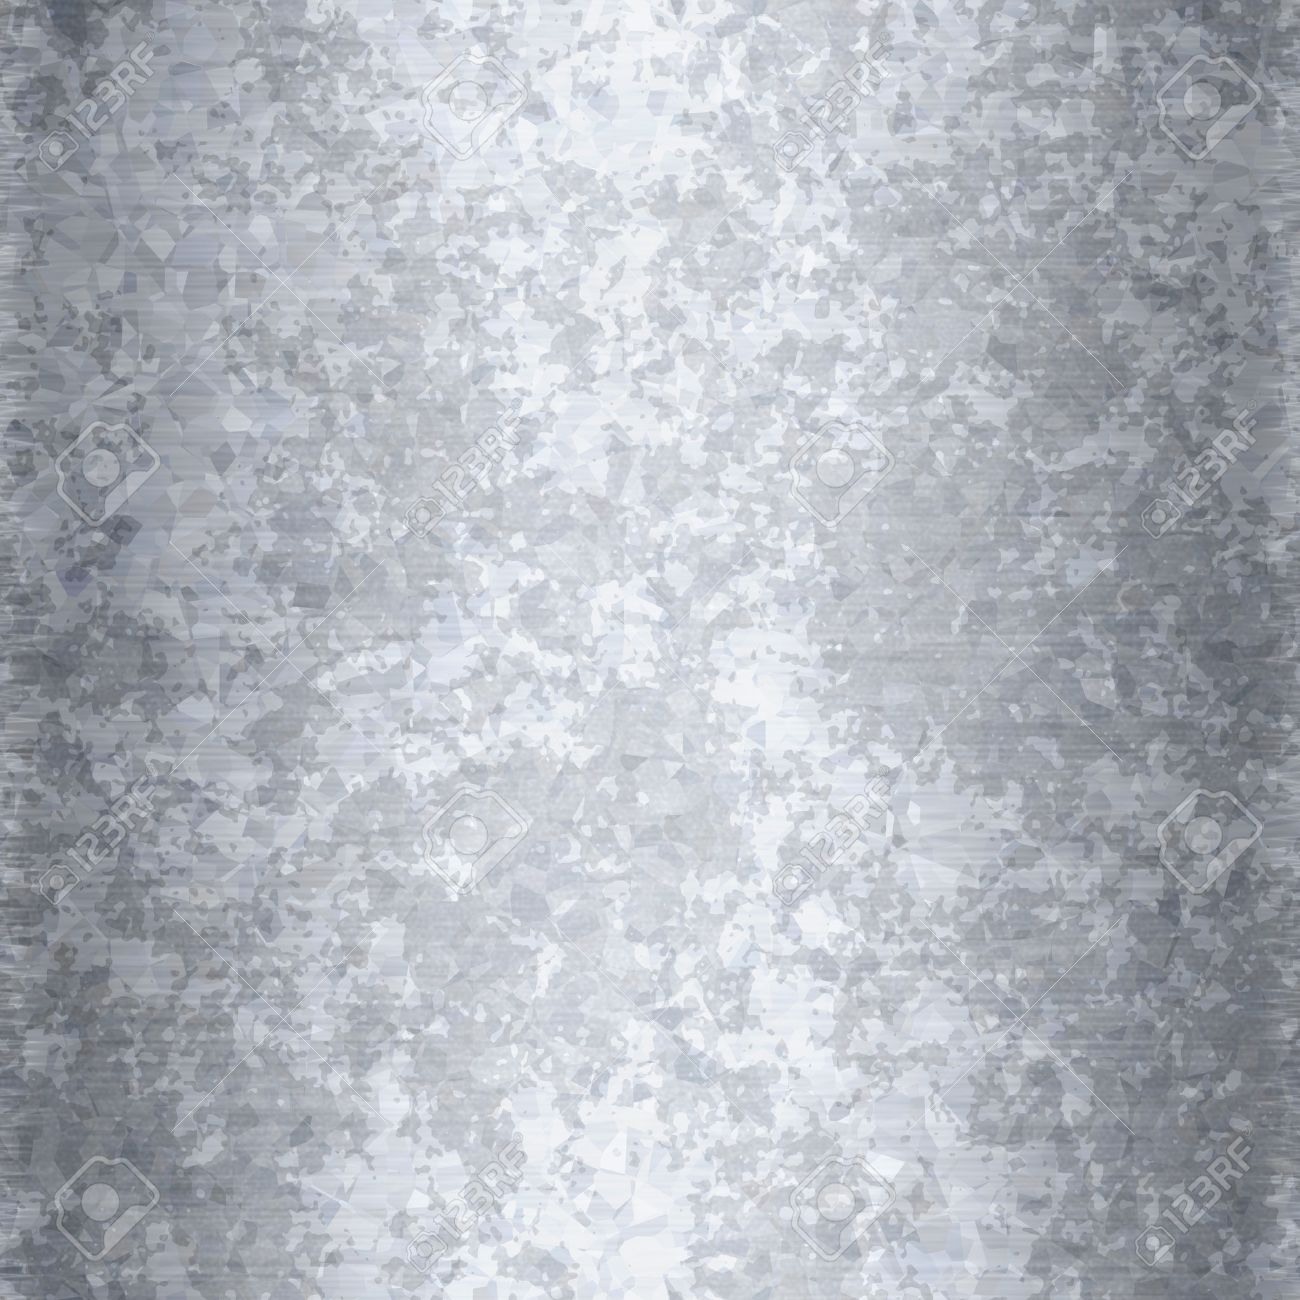 Galvanized metal texture that works as a seamless background pattern. Stock Photo - 41155838